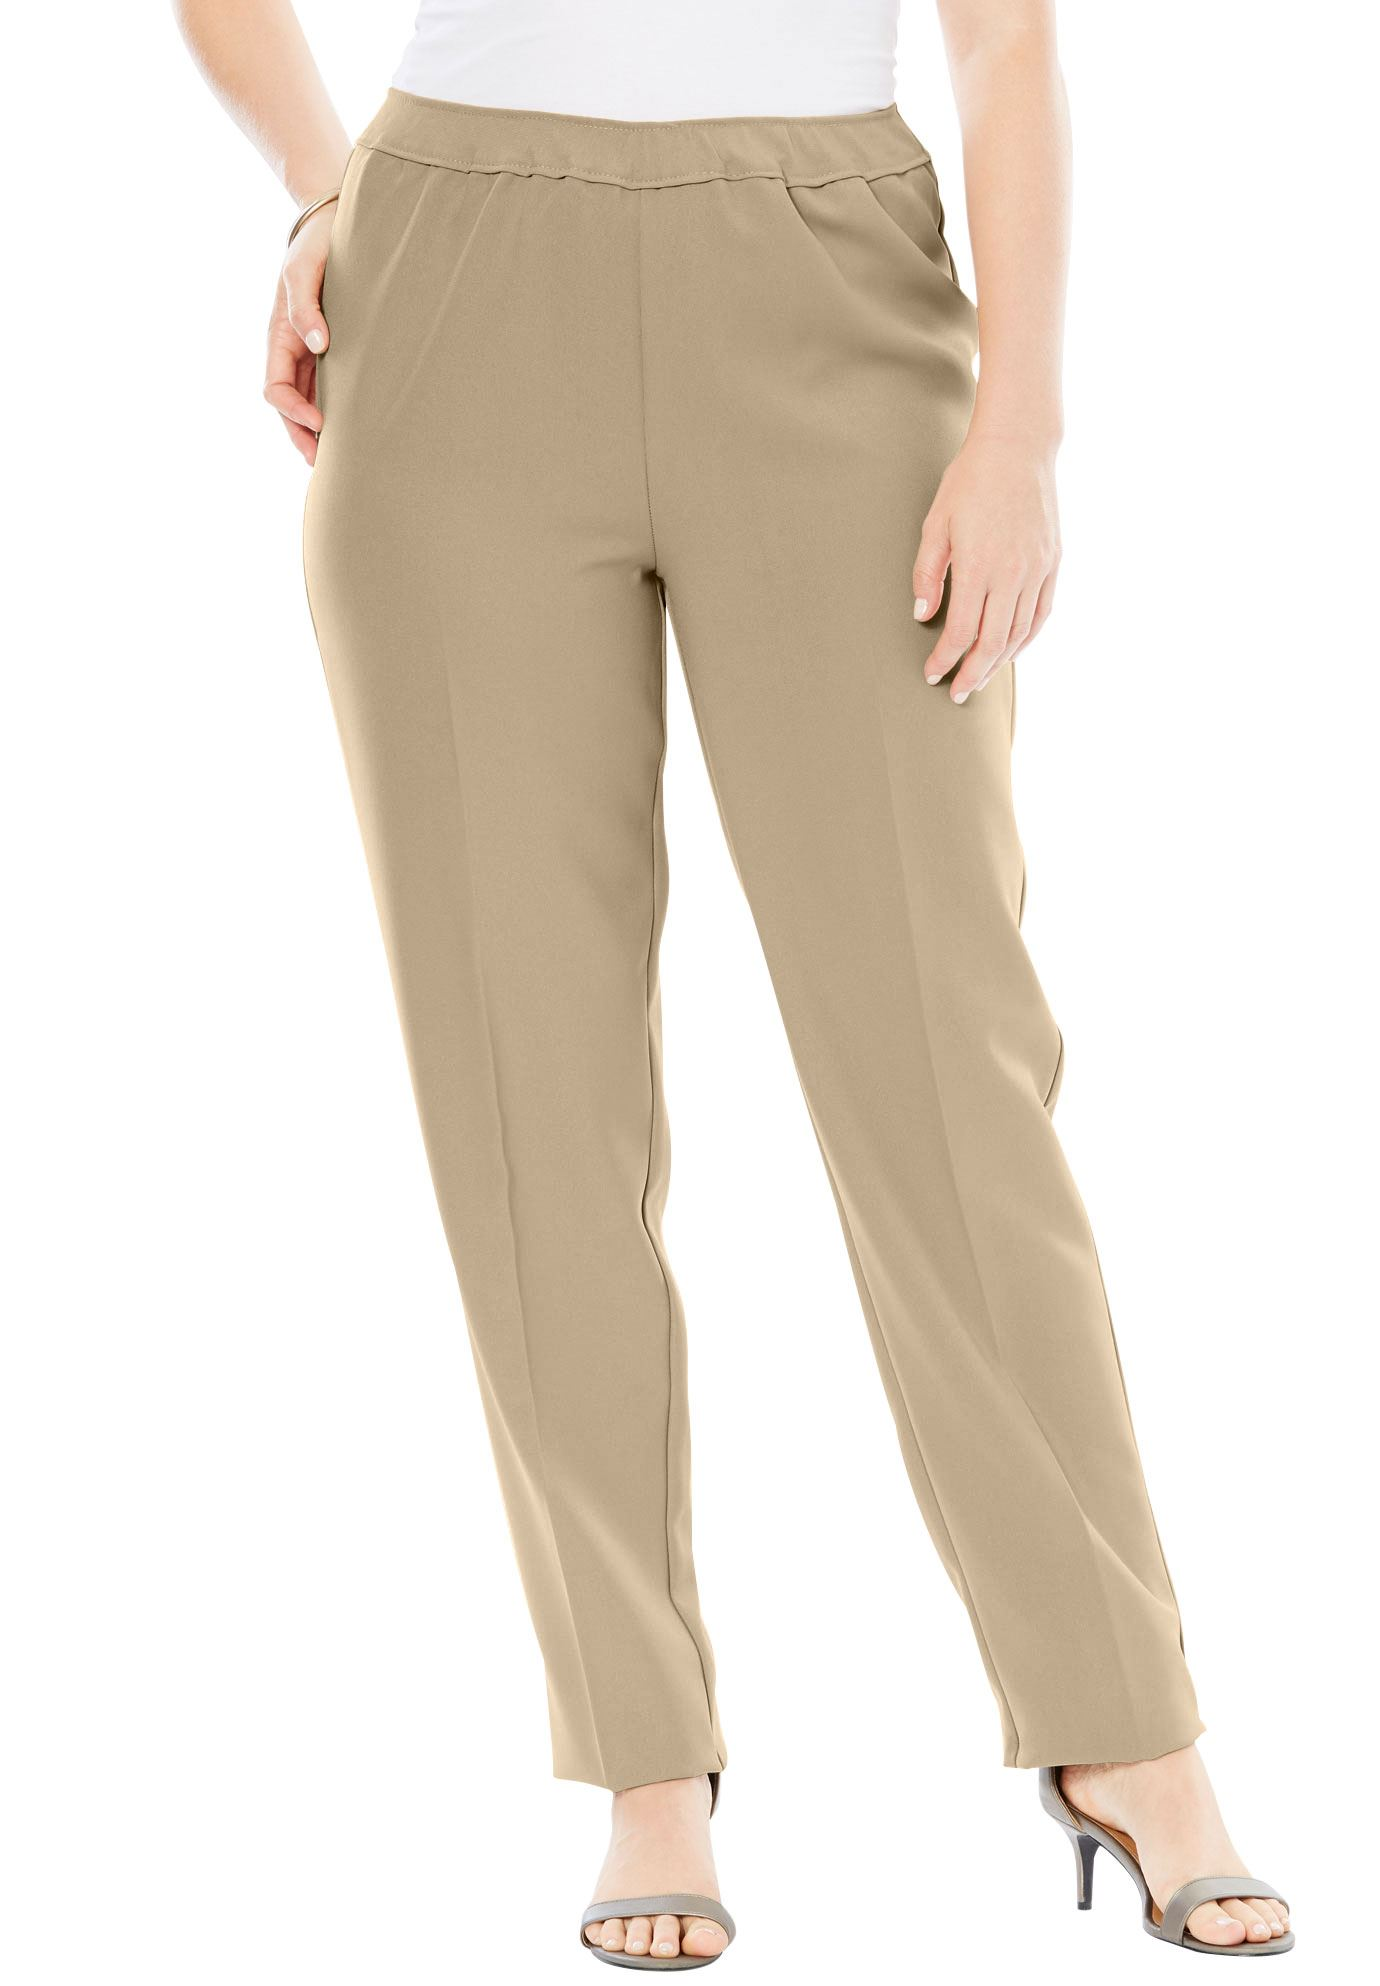 Roaman's Plus Size Tall Bend Over Classic Pant